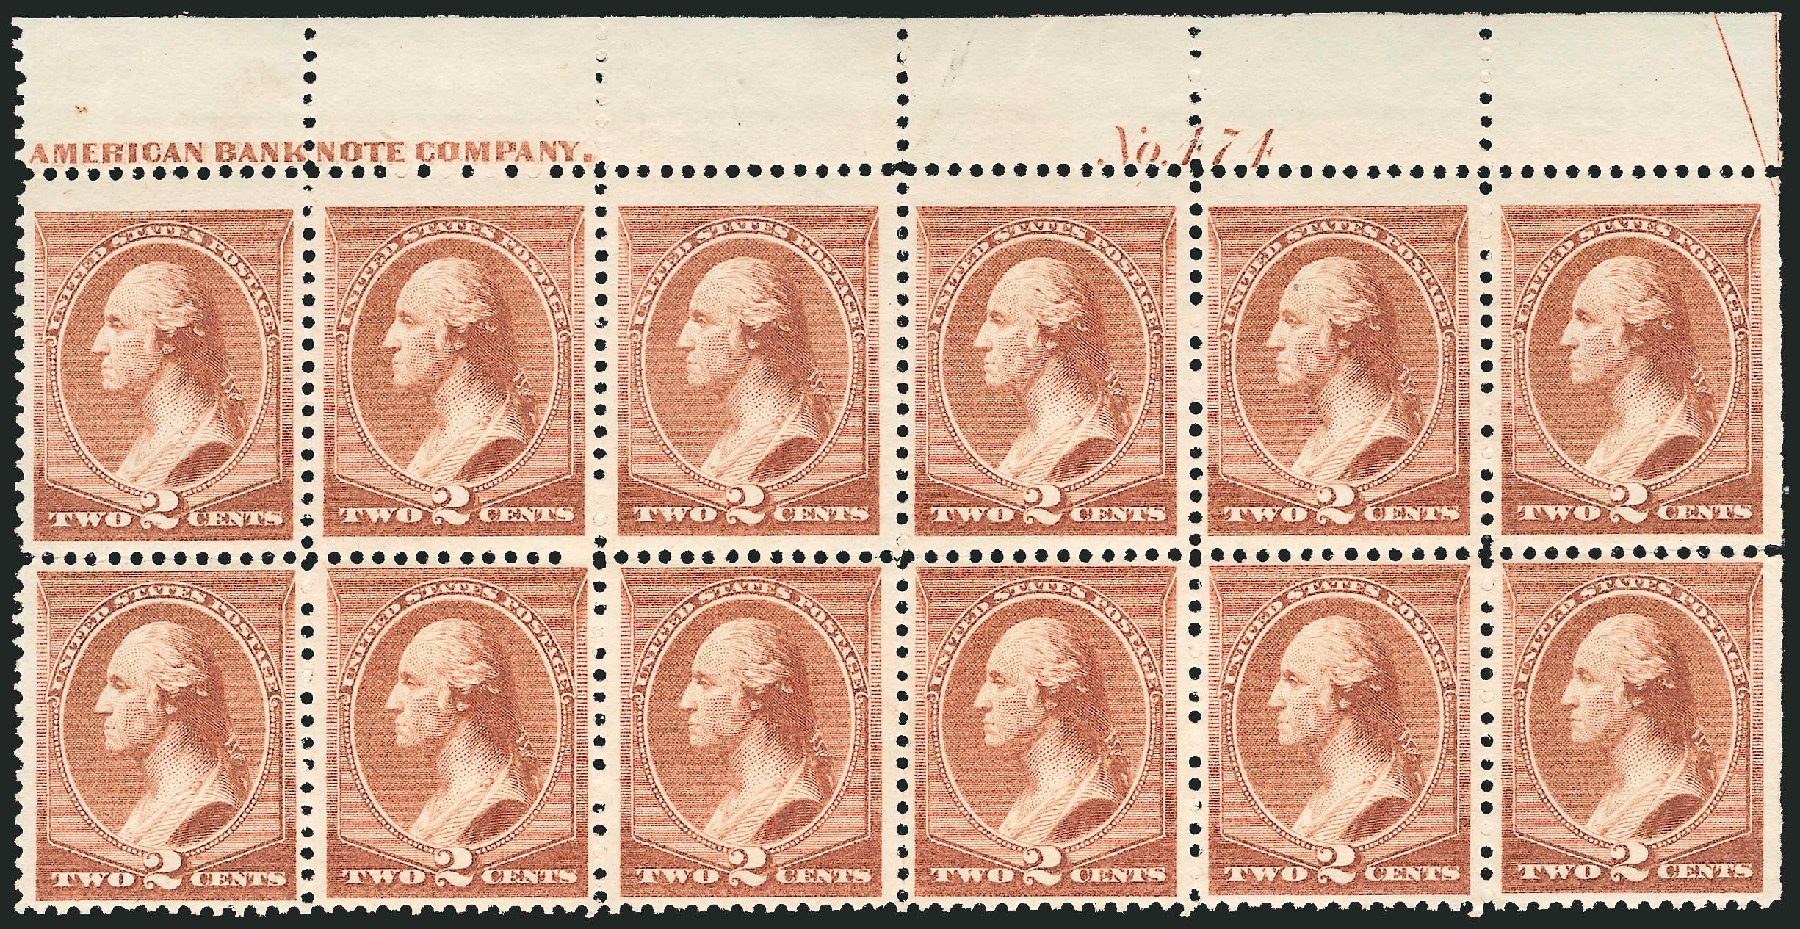 US Stamps Prices Scott Catalogue 210: 2c 1883 Washington. Robert Siegel Auction Galleries, Nov 2014, Sale 1084, Lot 3474